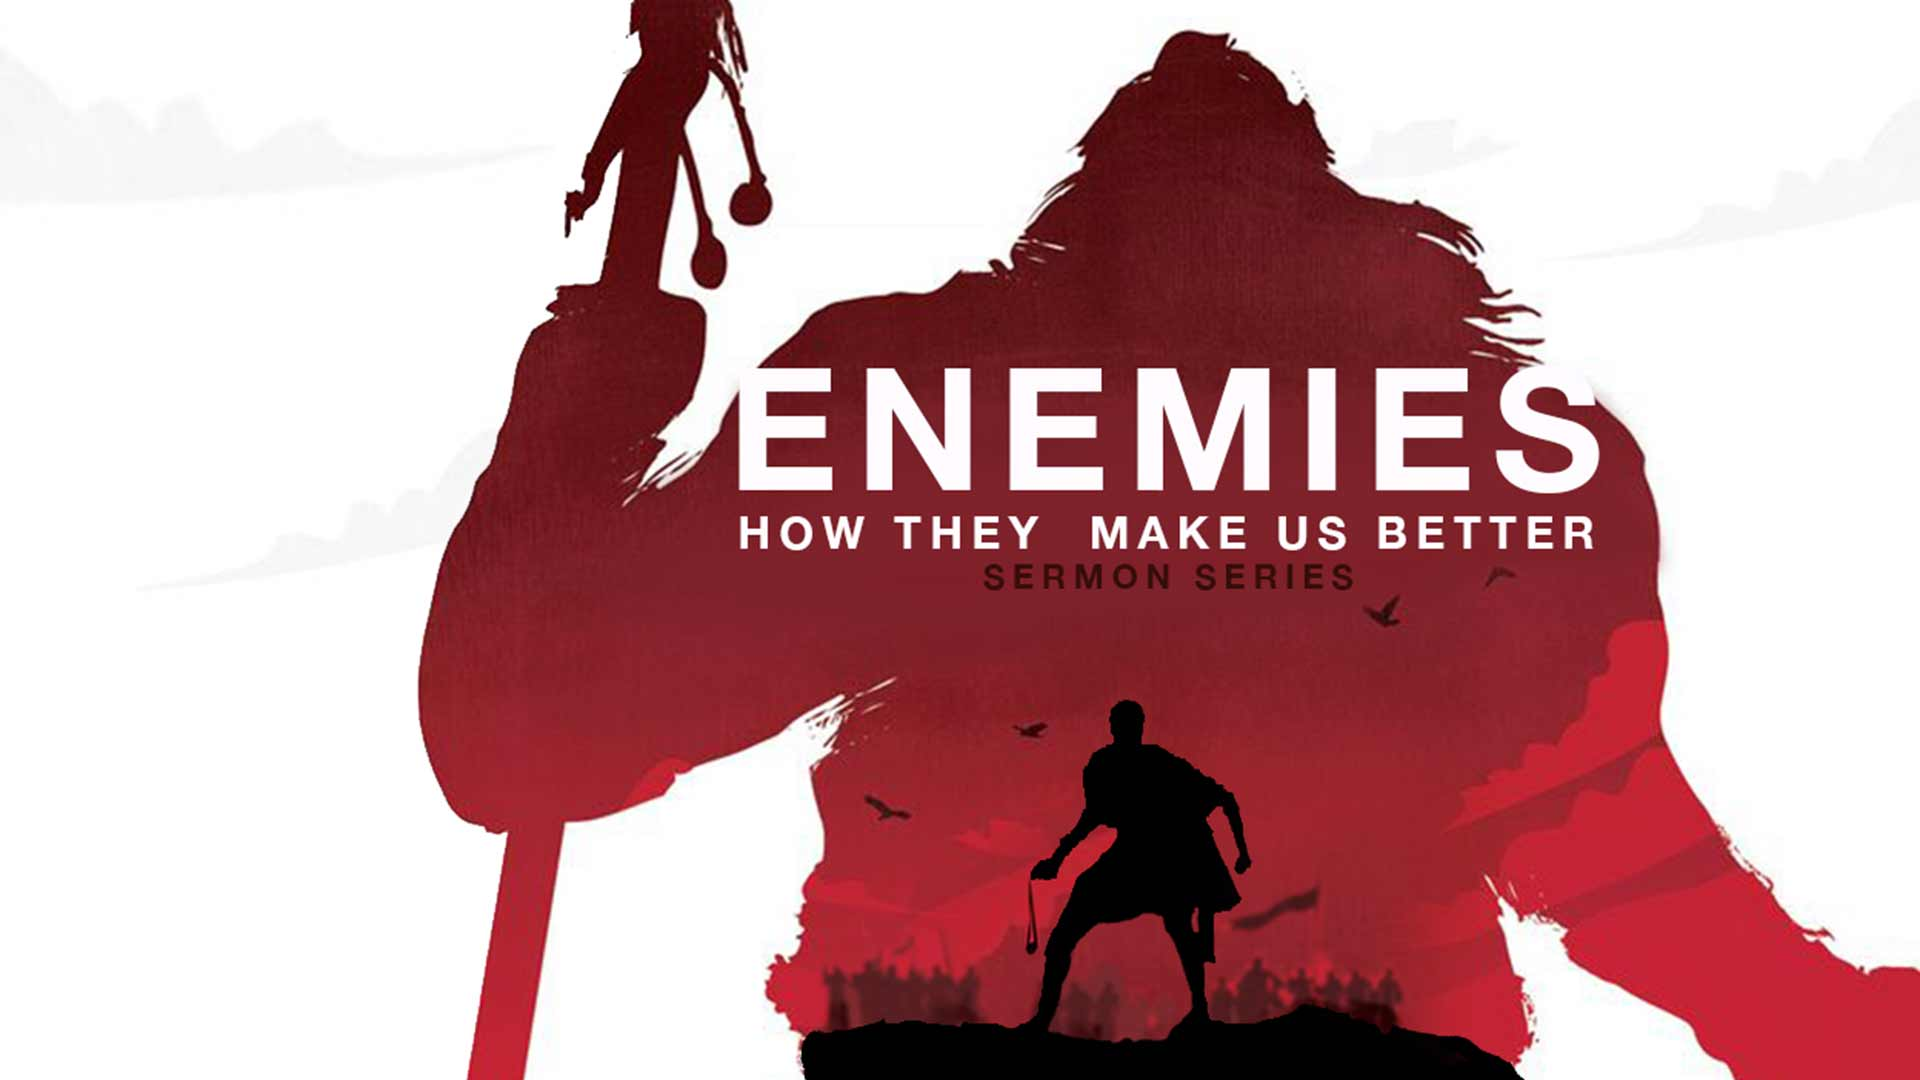 Enemies. How they make us better